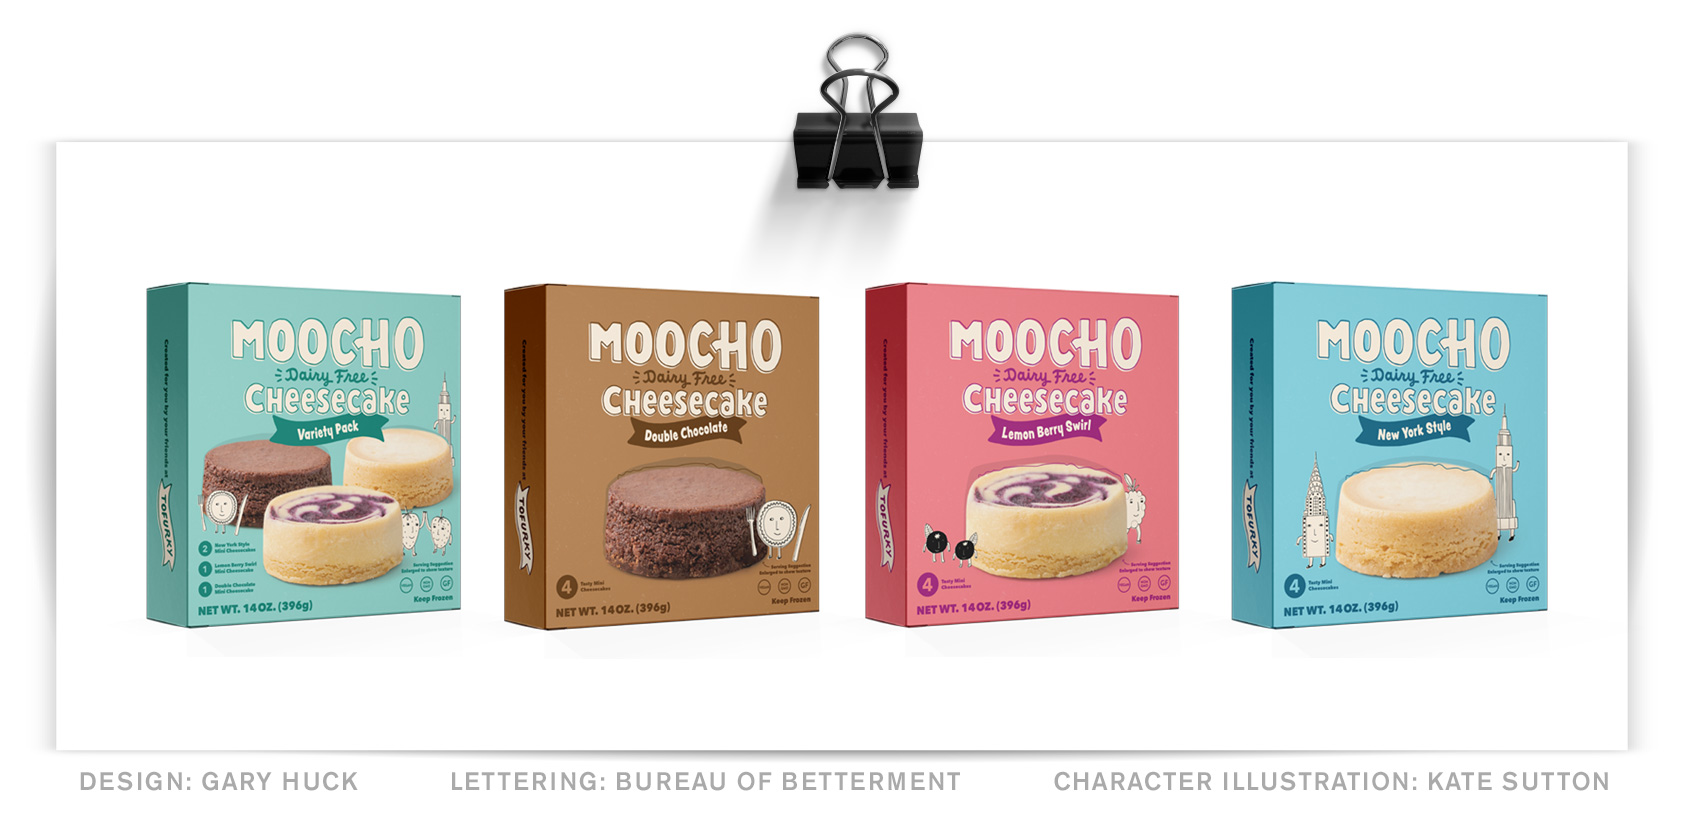 Series of four Moocho Cheesecake packaging boxes (design: Gary Huck) with a hand lettered MOOCHO word mark and product title and flavor.